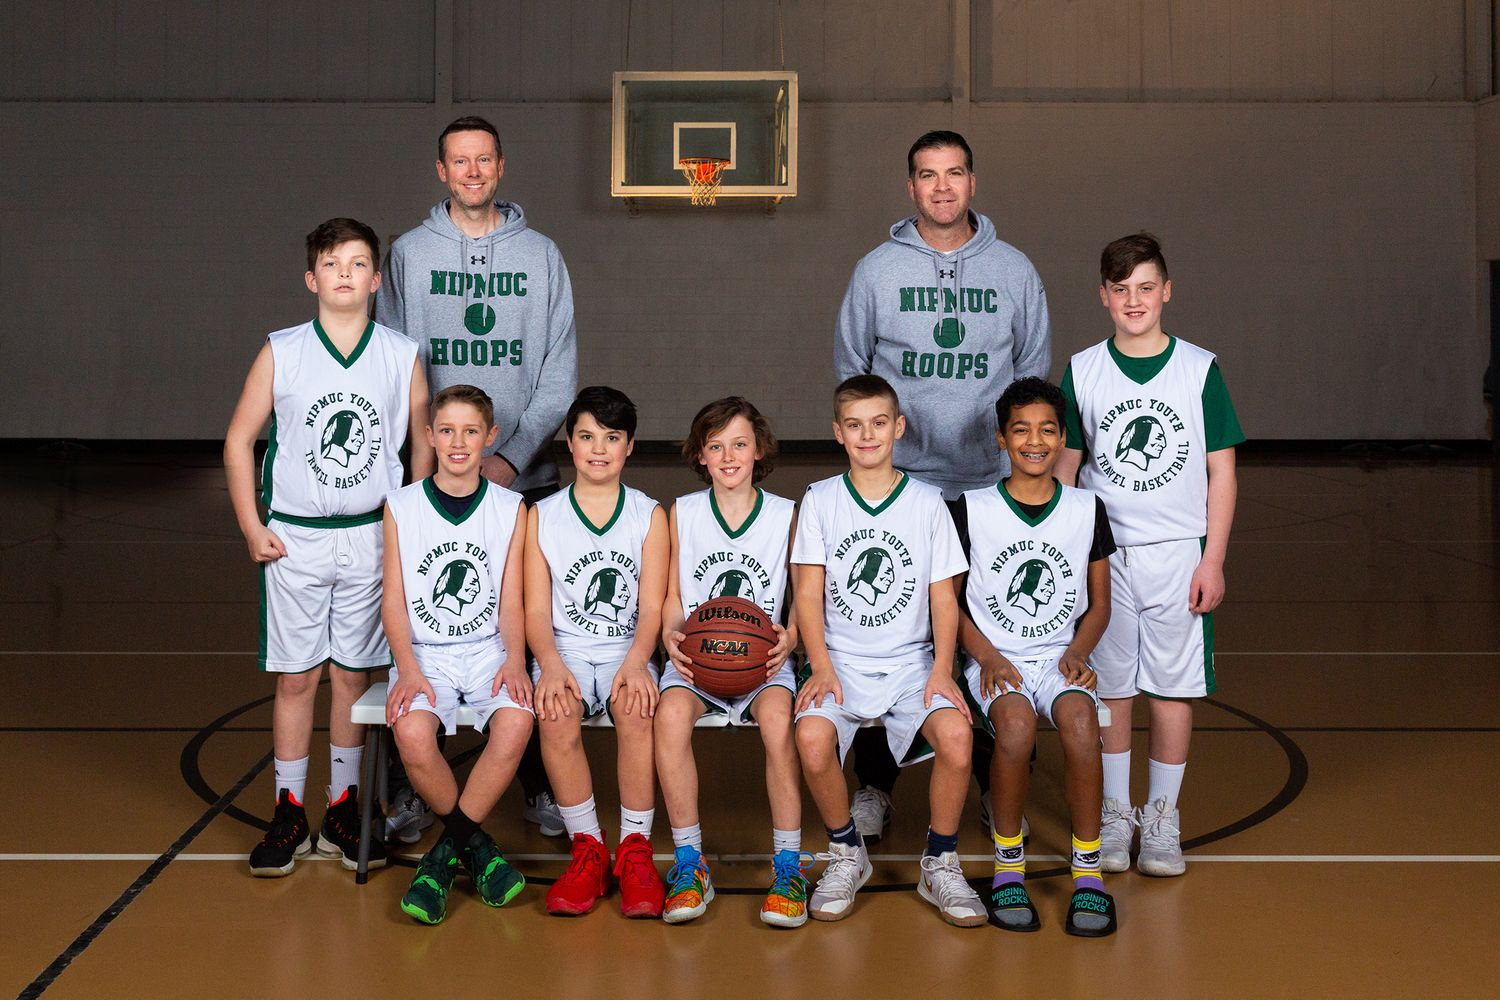 Nipmuc Travel Basketball Team Photo Boys